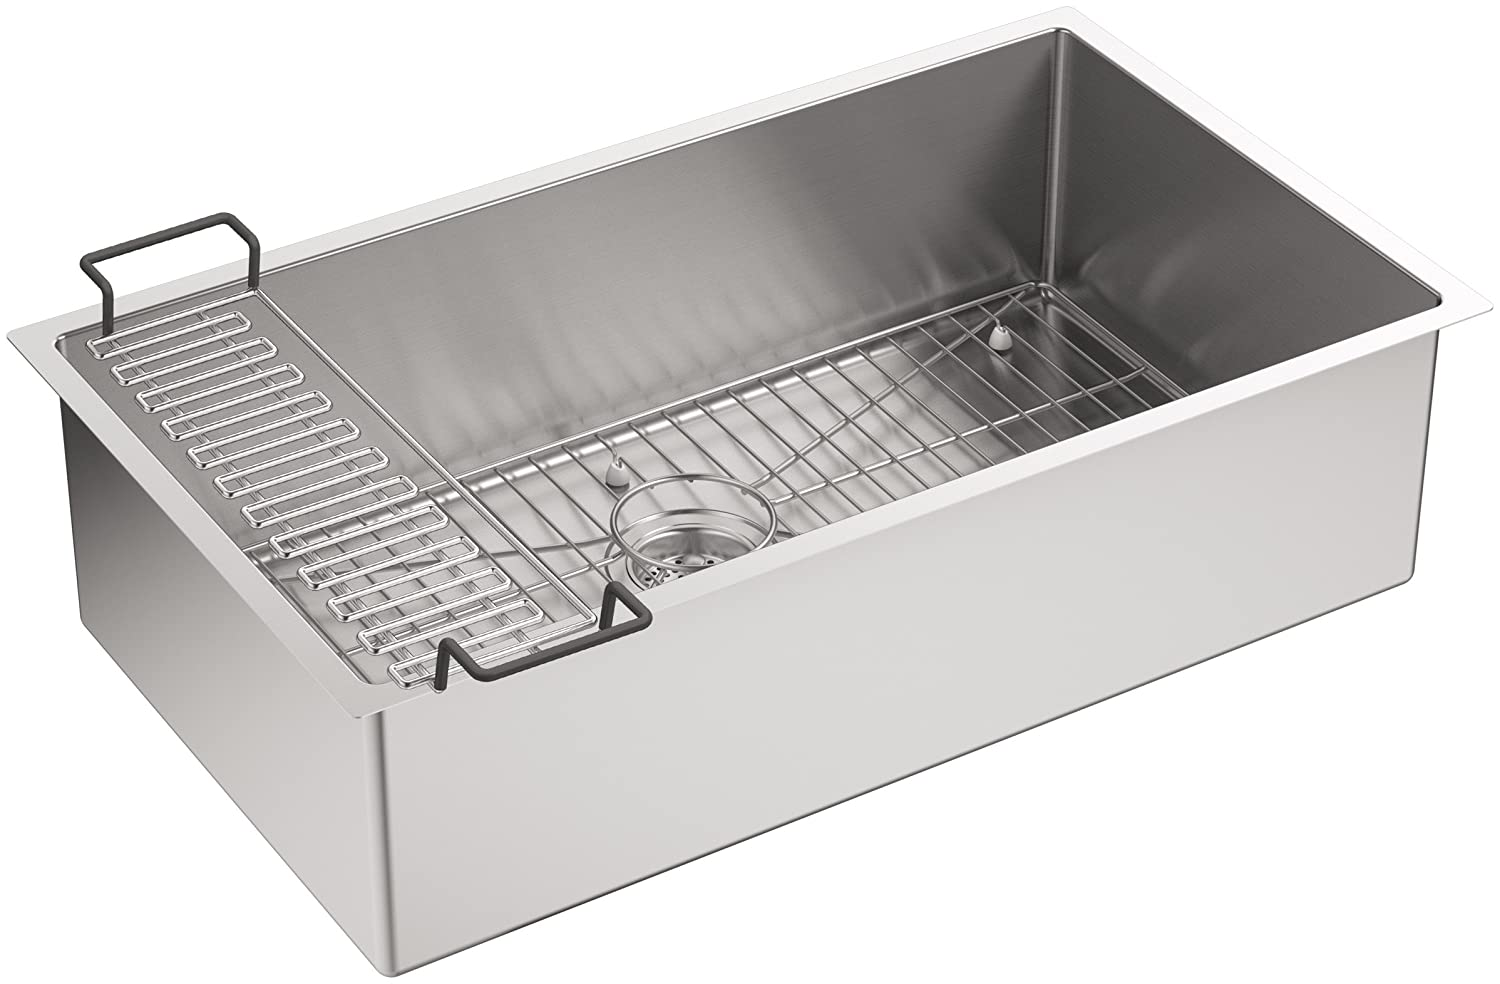 KOHLER K-5285-NA Strive 32 X 18-1/4 X 9-5/16-Inch Under-Mount Single Bowl Kitchen Sink with Basin Rack, Stainless Steel, 1-Pack